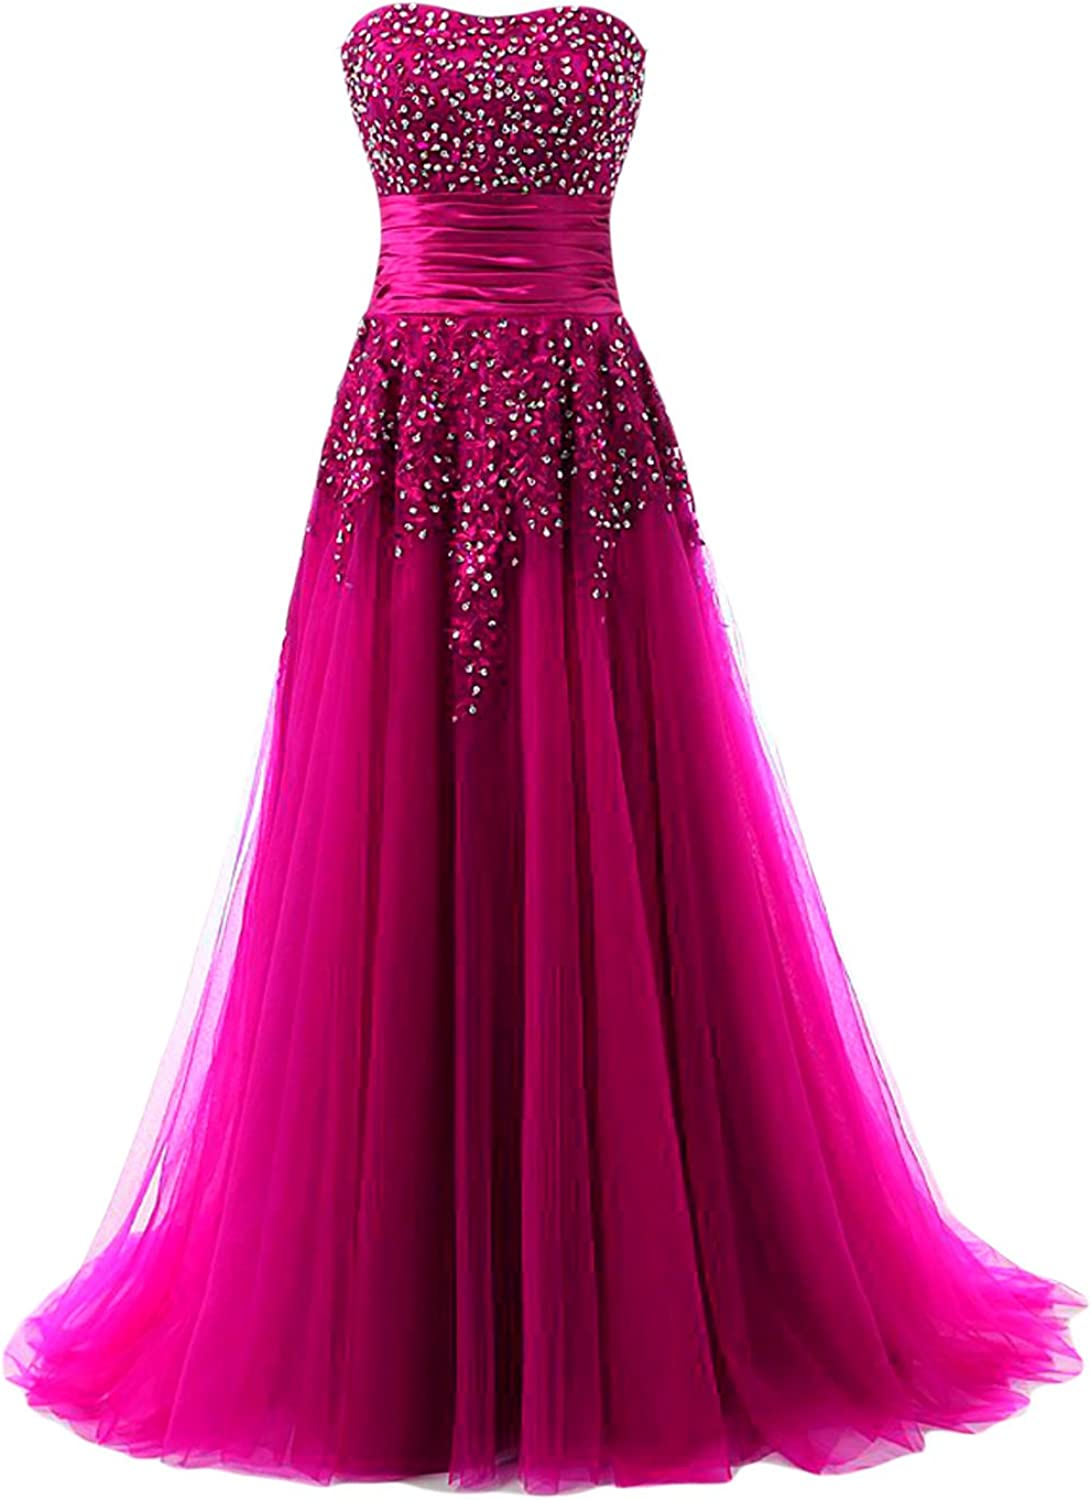 DINGZAN Wedding Reception Dresses Applique Prom Gowns Floor Length